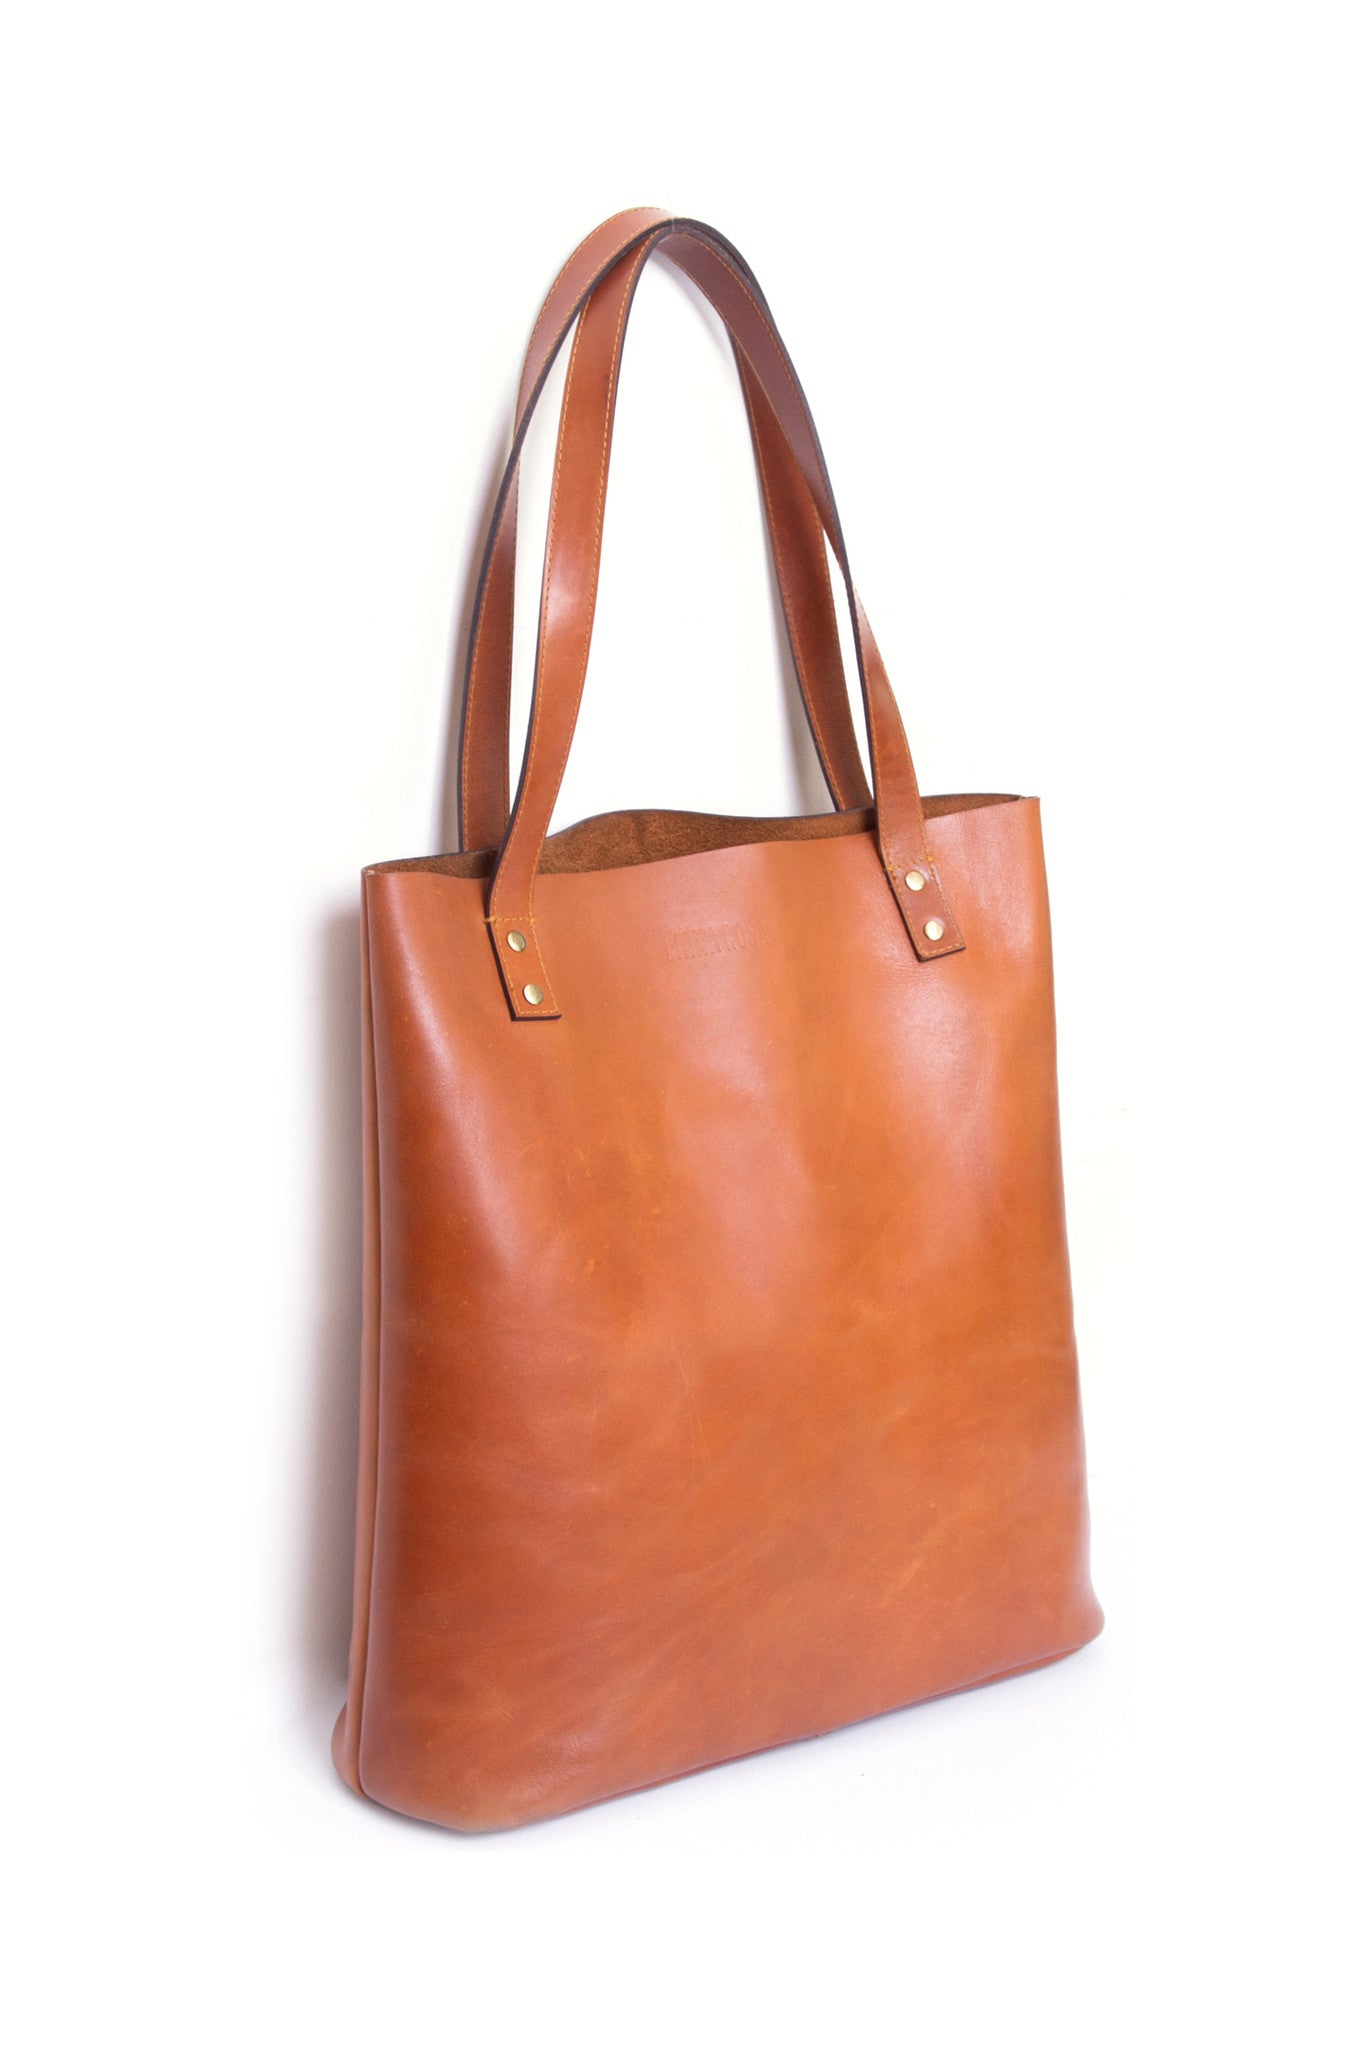 Henry Cognac Brown Leather Tote Bag Side View by Liana Rosa